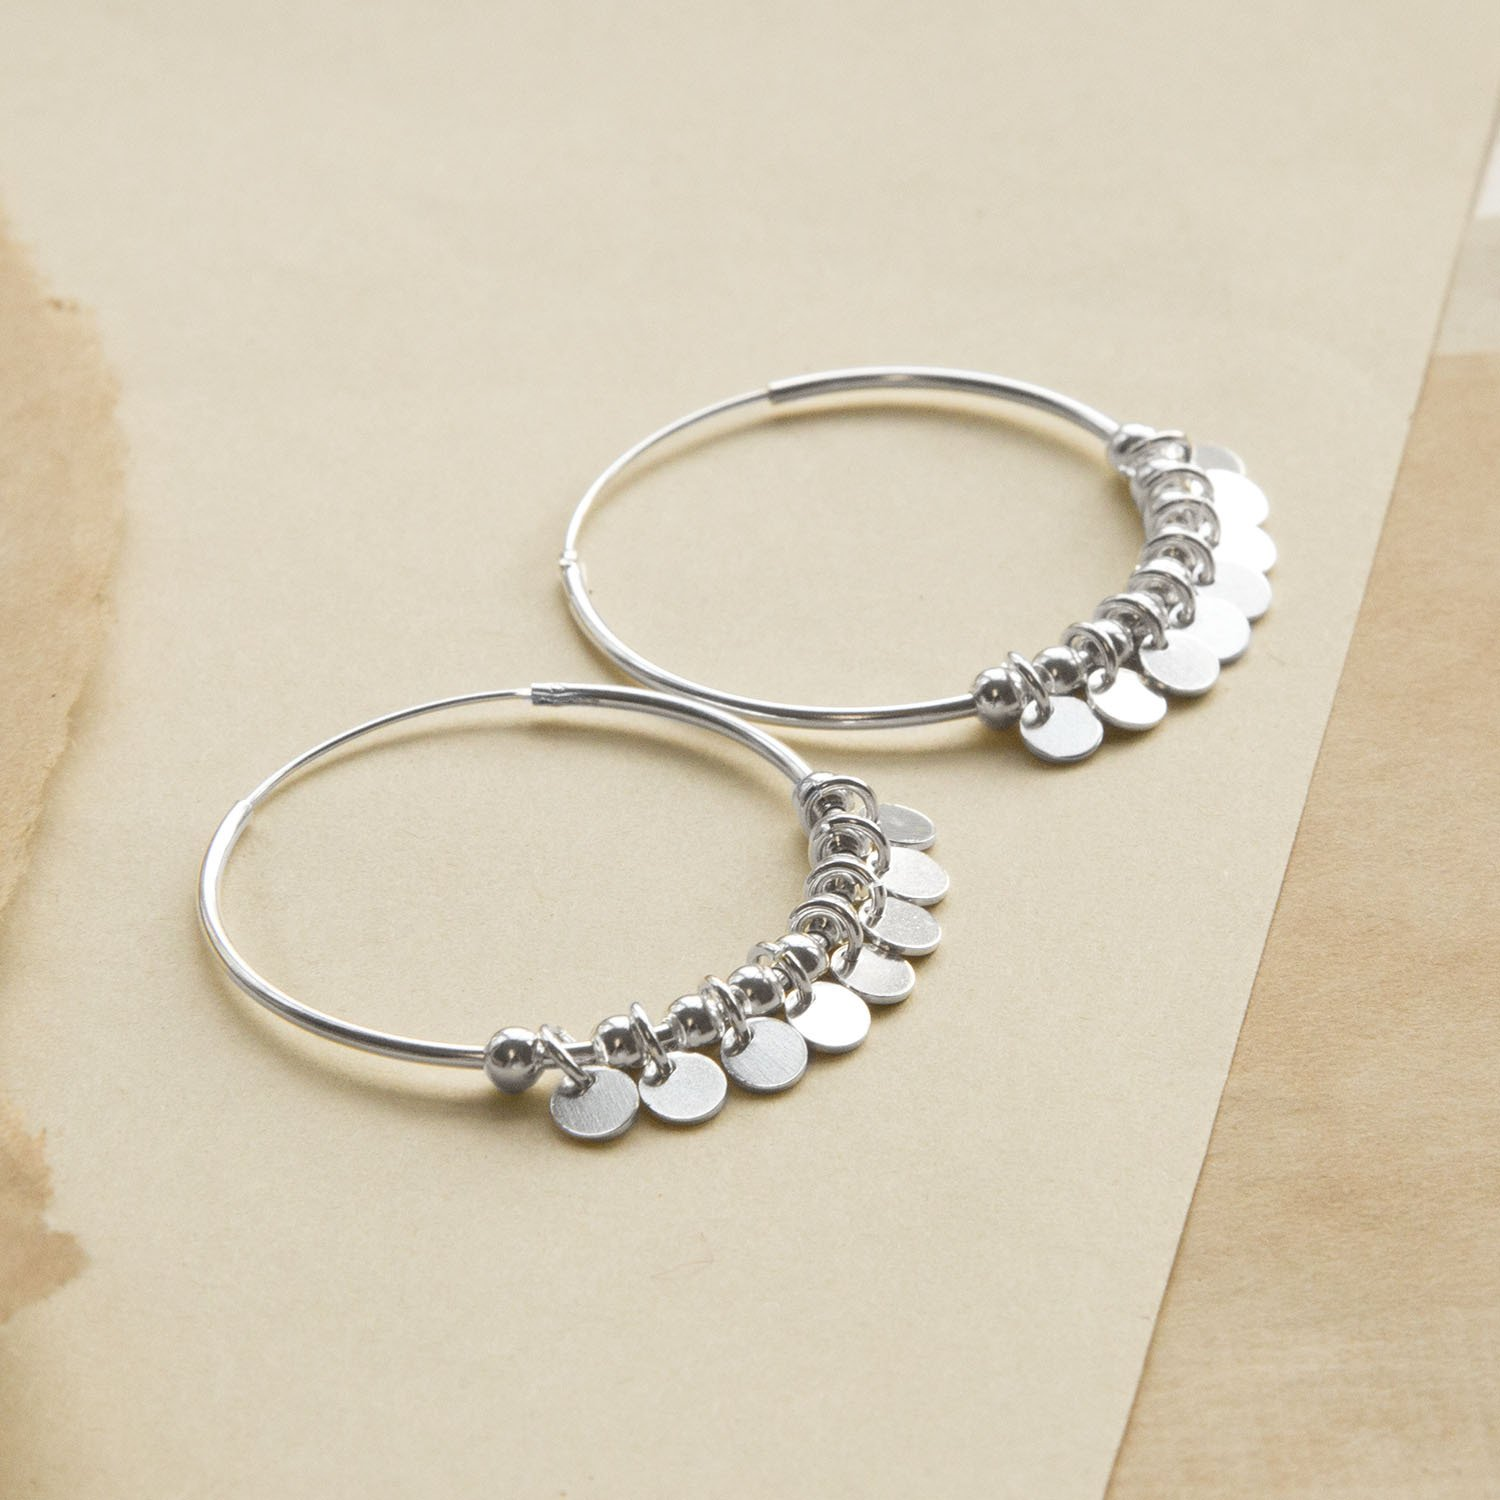 Silver Hoops with sequin detail on different coloured sandy paper background